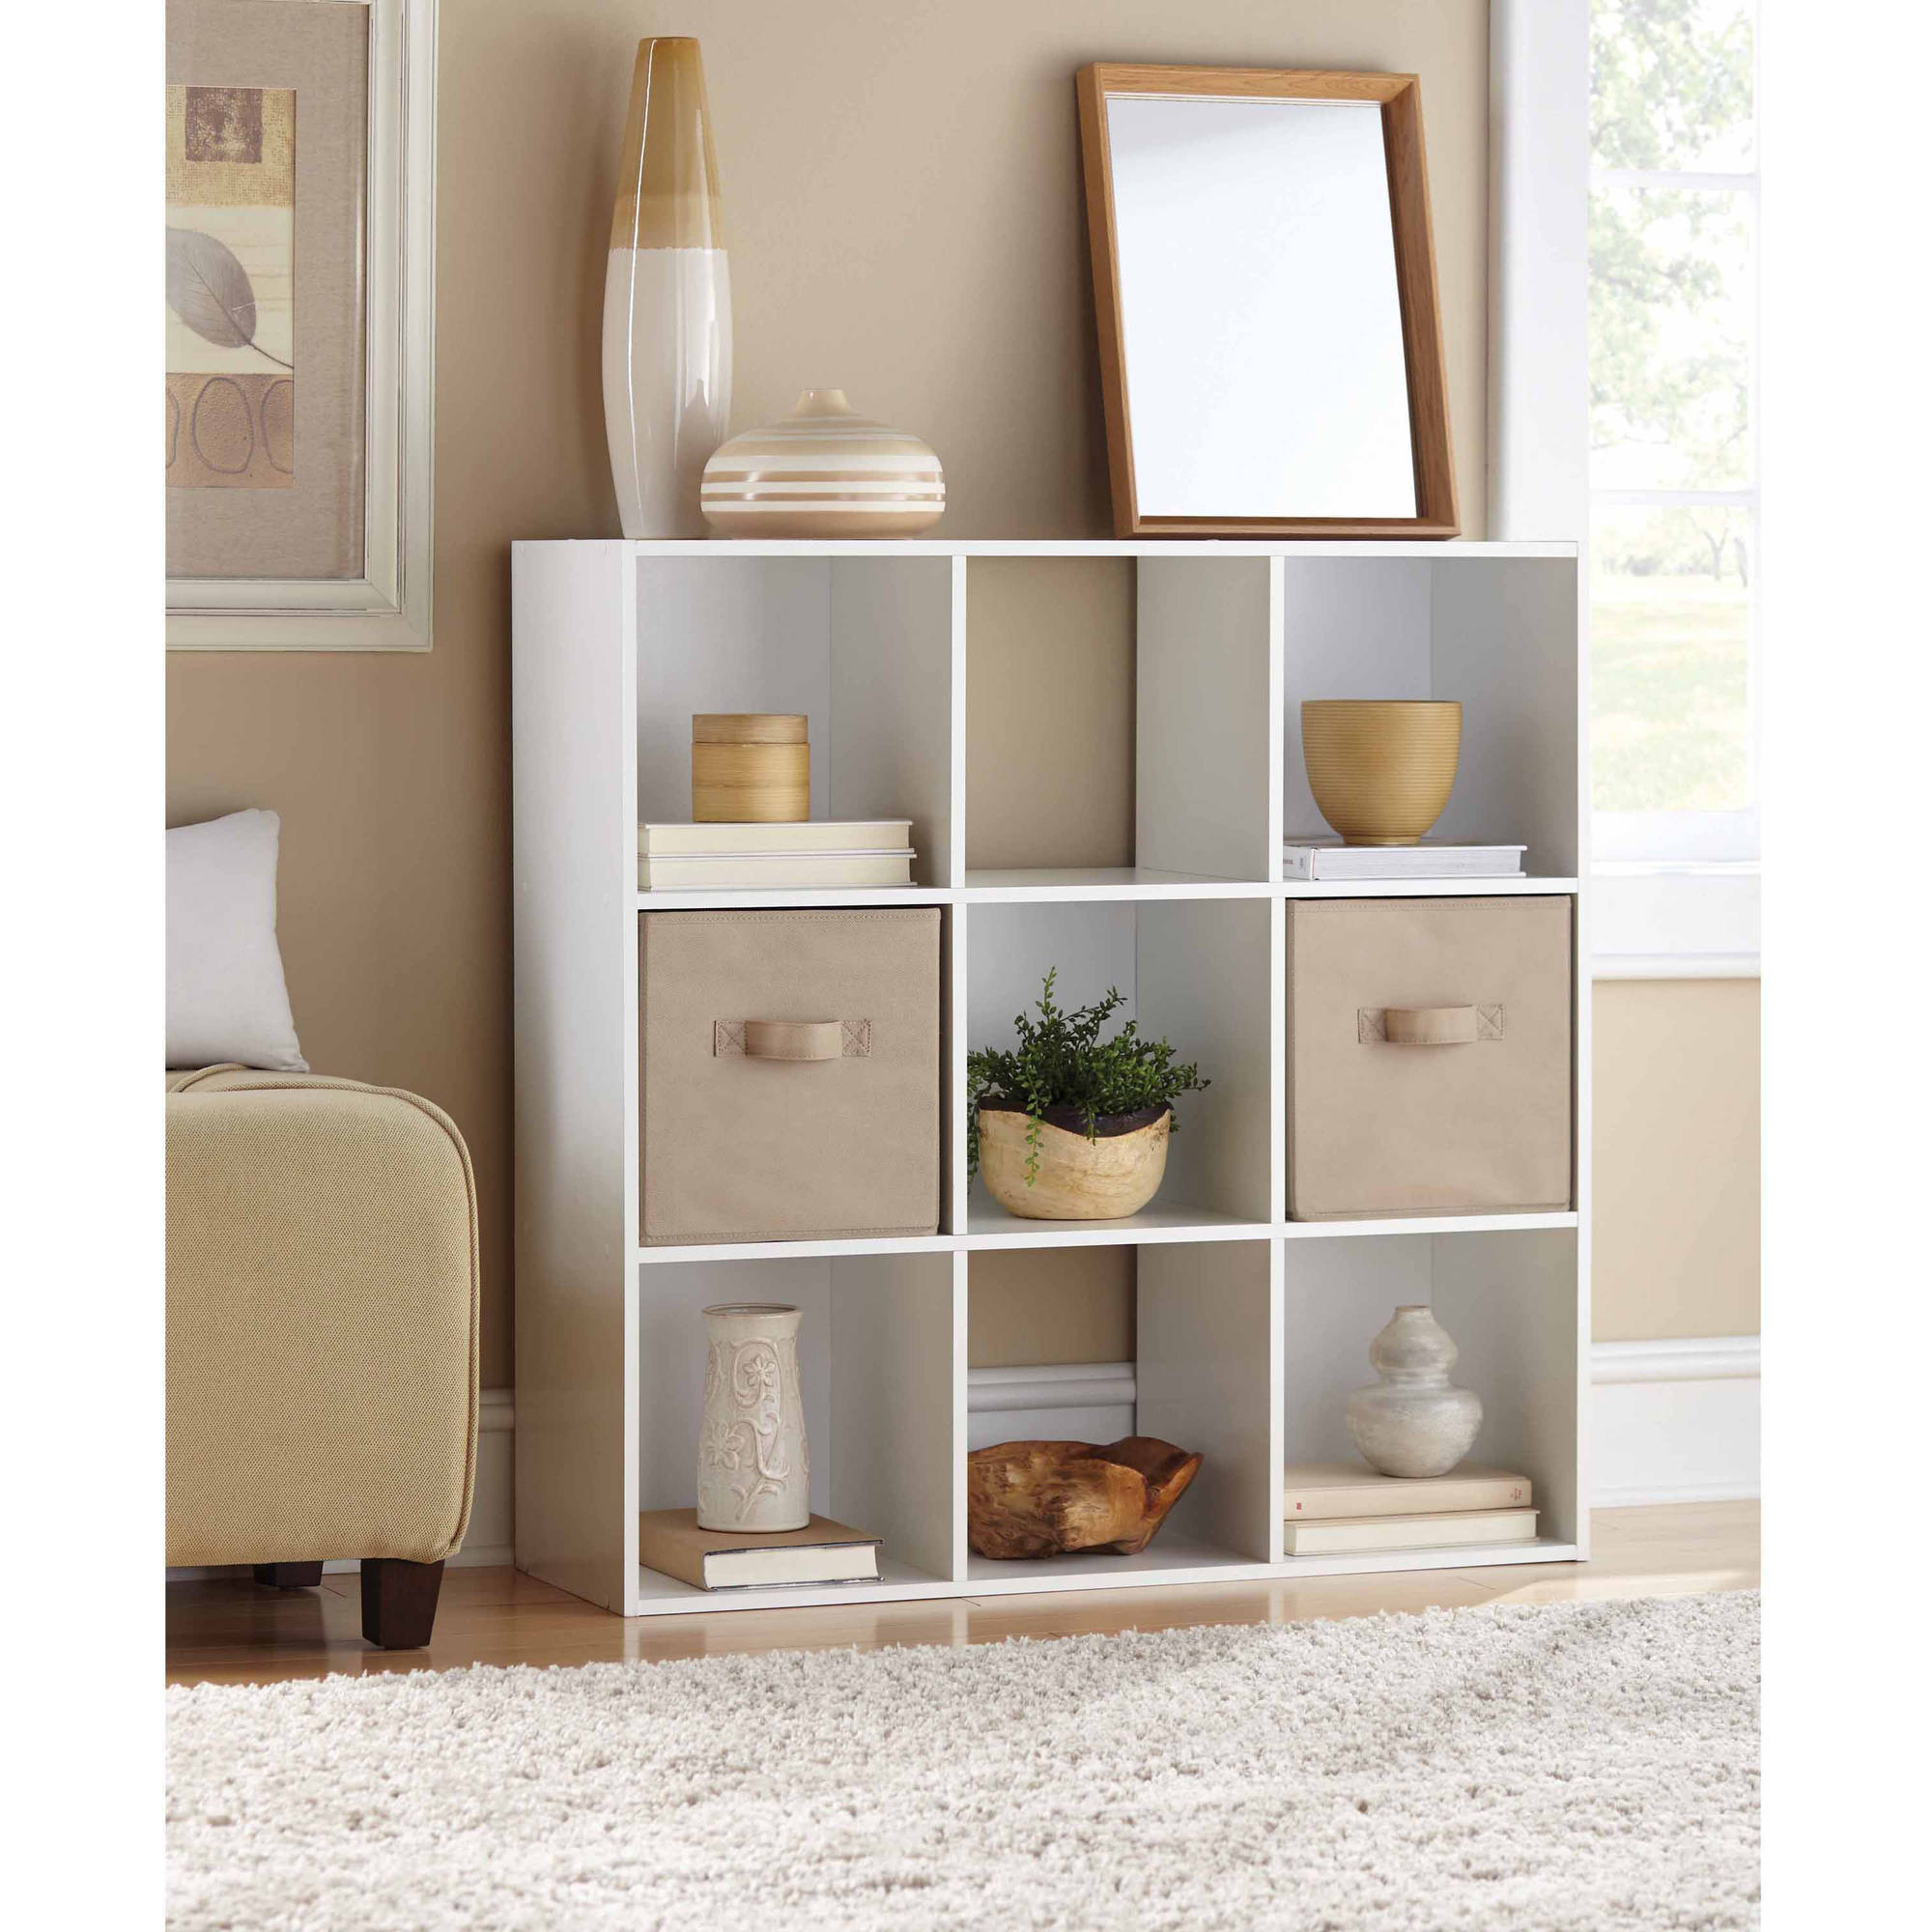 Storage Shelves at Walmart | Walmart Plastic Shelves | Walmart Shelving